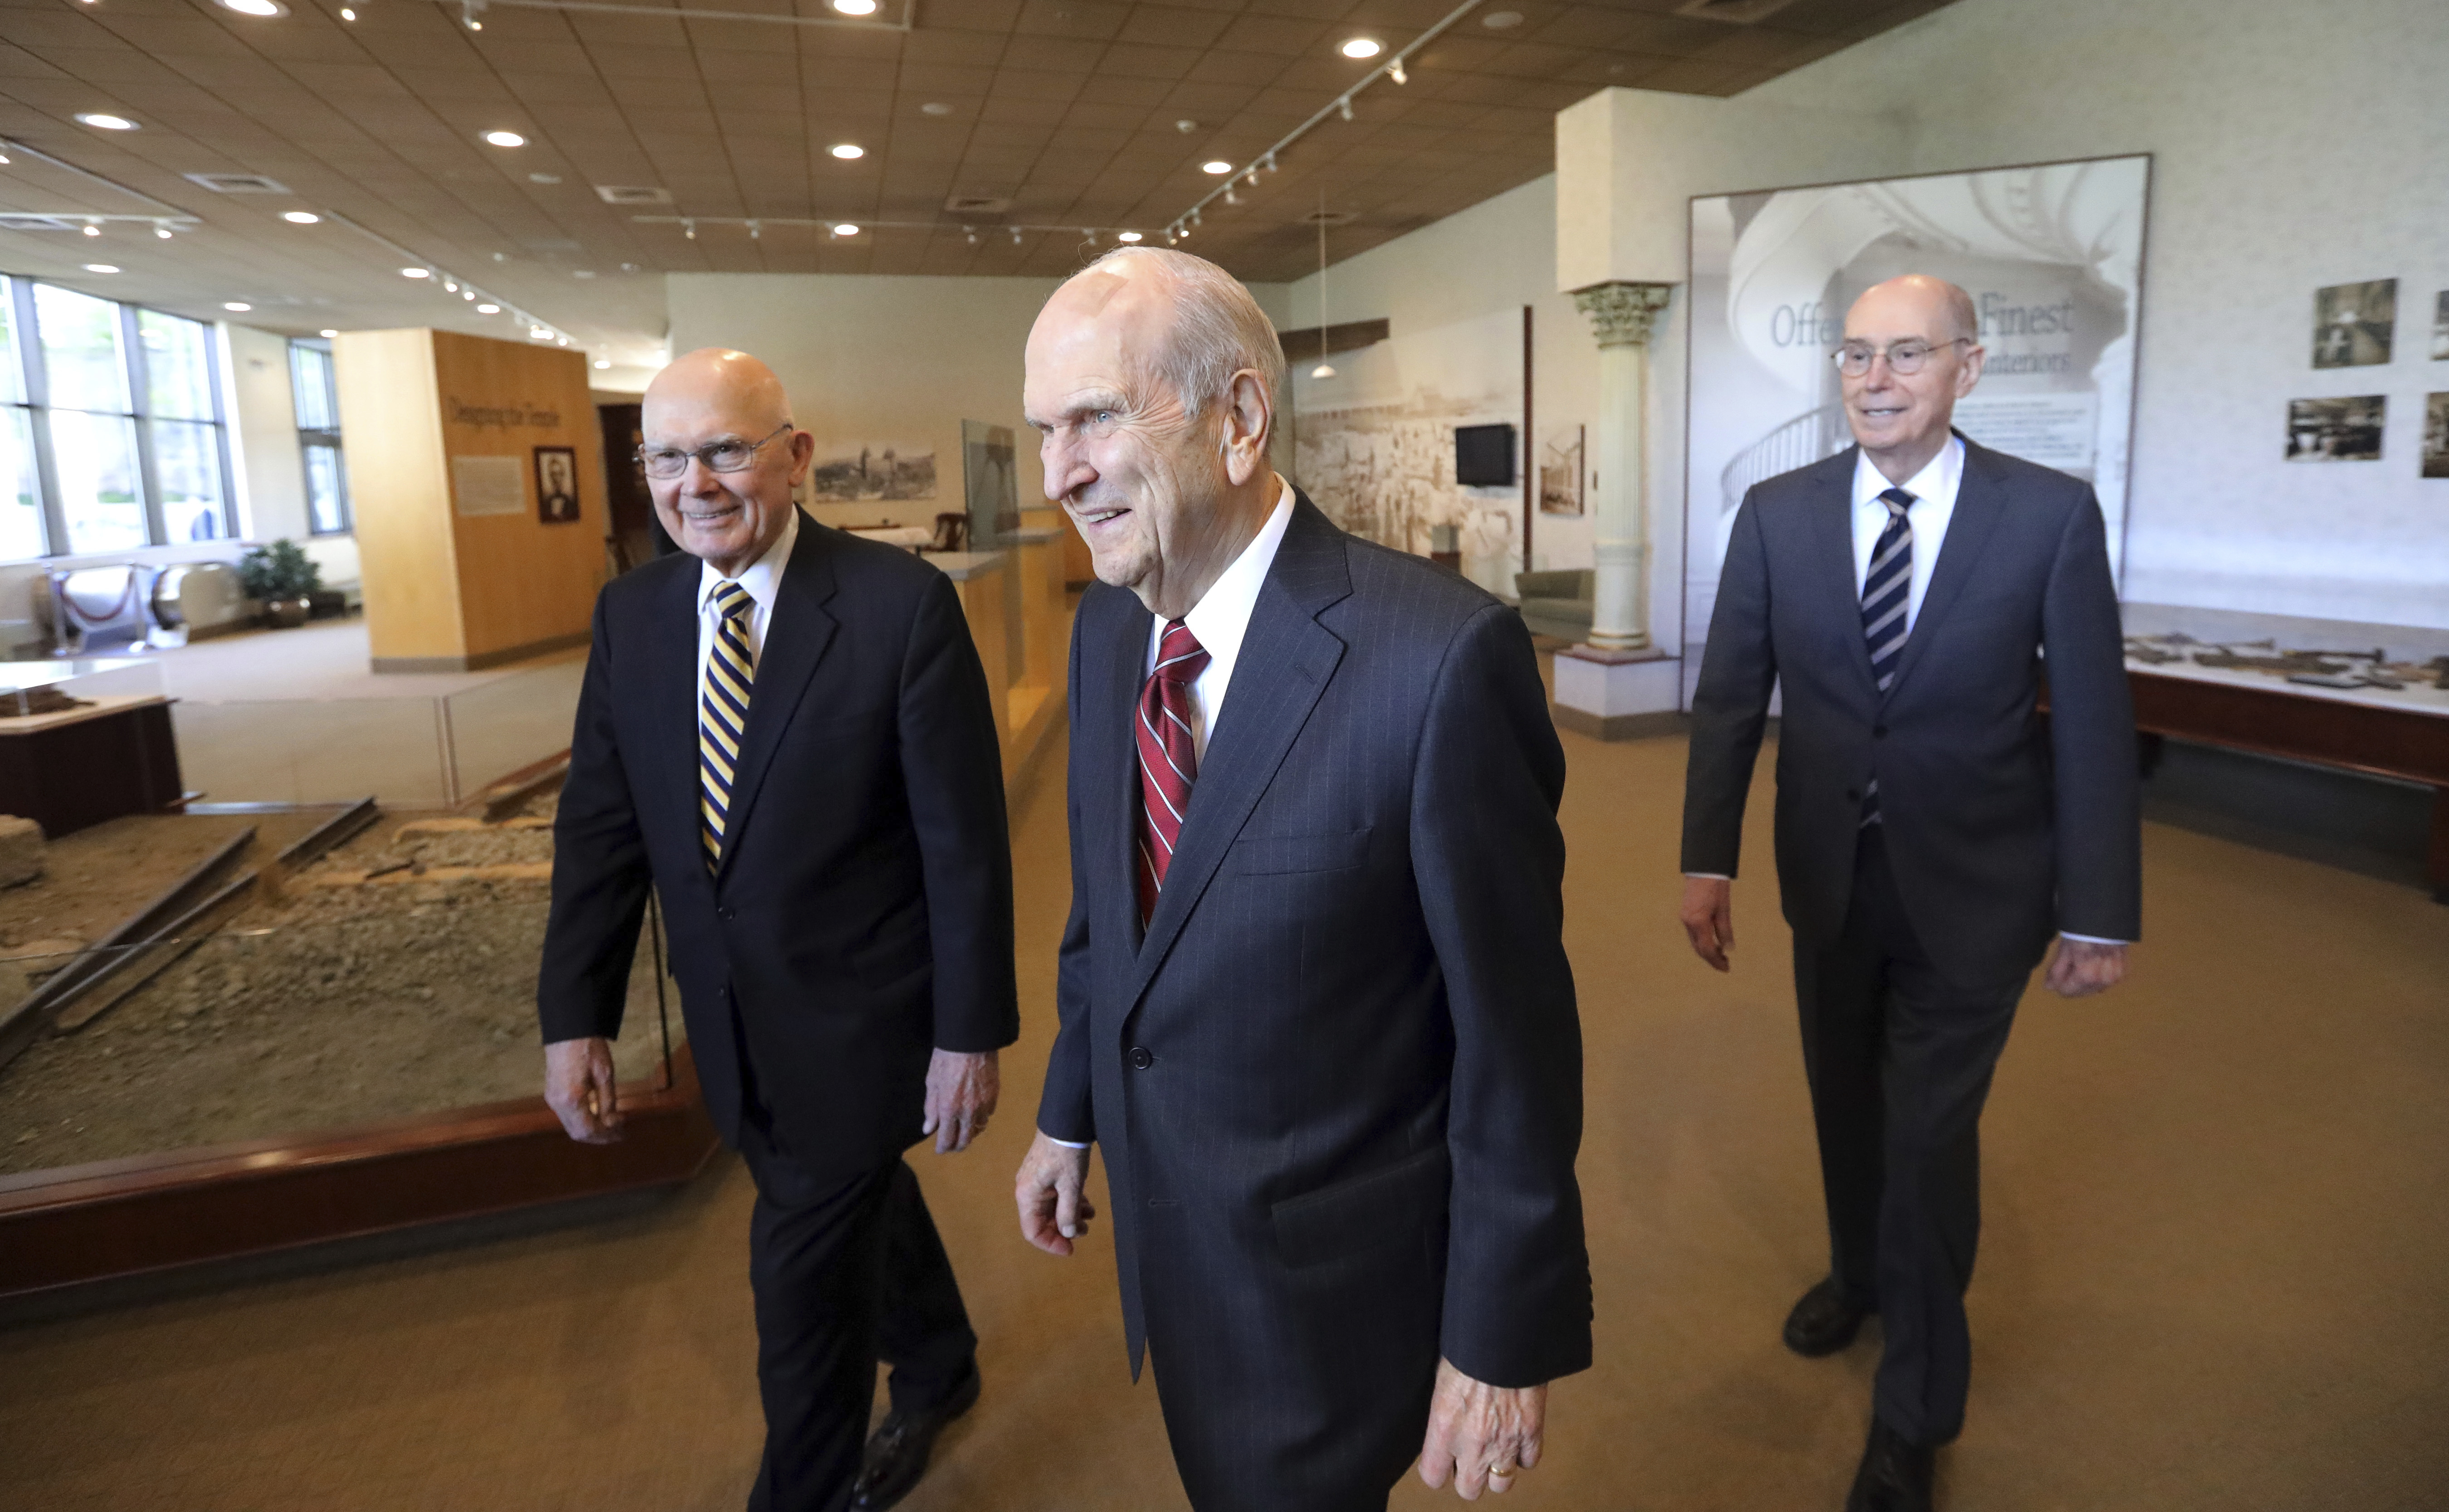 The Church of Jesus Christ of Latter-day Saints President Russell M. Nelson, center, walks with his counselors, Dallin H. Oaks, left, and Henry B. Eyring, right, as they arrive for a news conference at the Temple Square South Visitors Center Friday, April 19, 2019, in Salt Lake City. An iconic temple central to The Church of Jesus Christ of Latter-day Saints faith will close for four years to complete a major renovation, and officials are keeping a careful eye on construction plans after a devastating fire at Notre Dame cathedral in Paris. Nelson said the closure will begin in December. (AP Photo/Rick Bowmer)